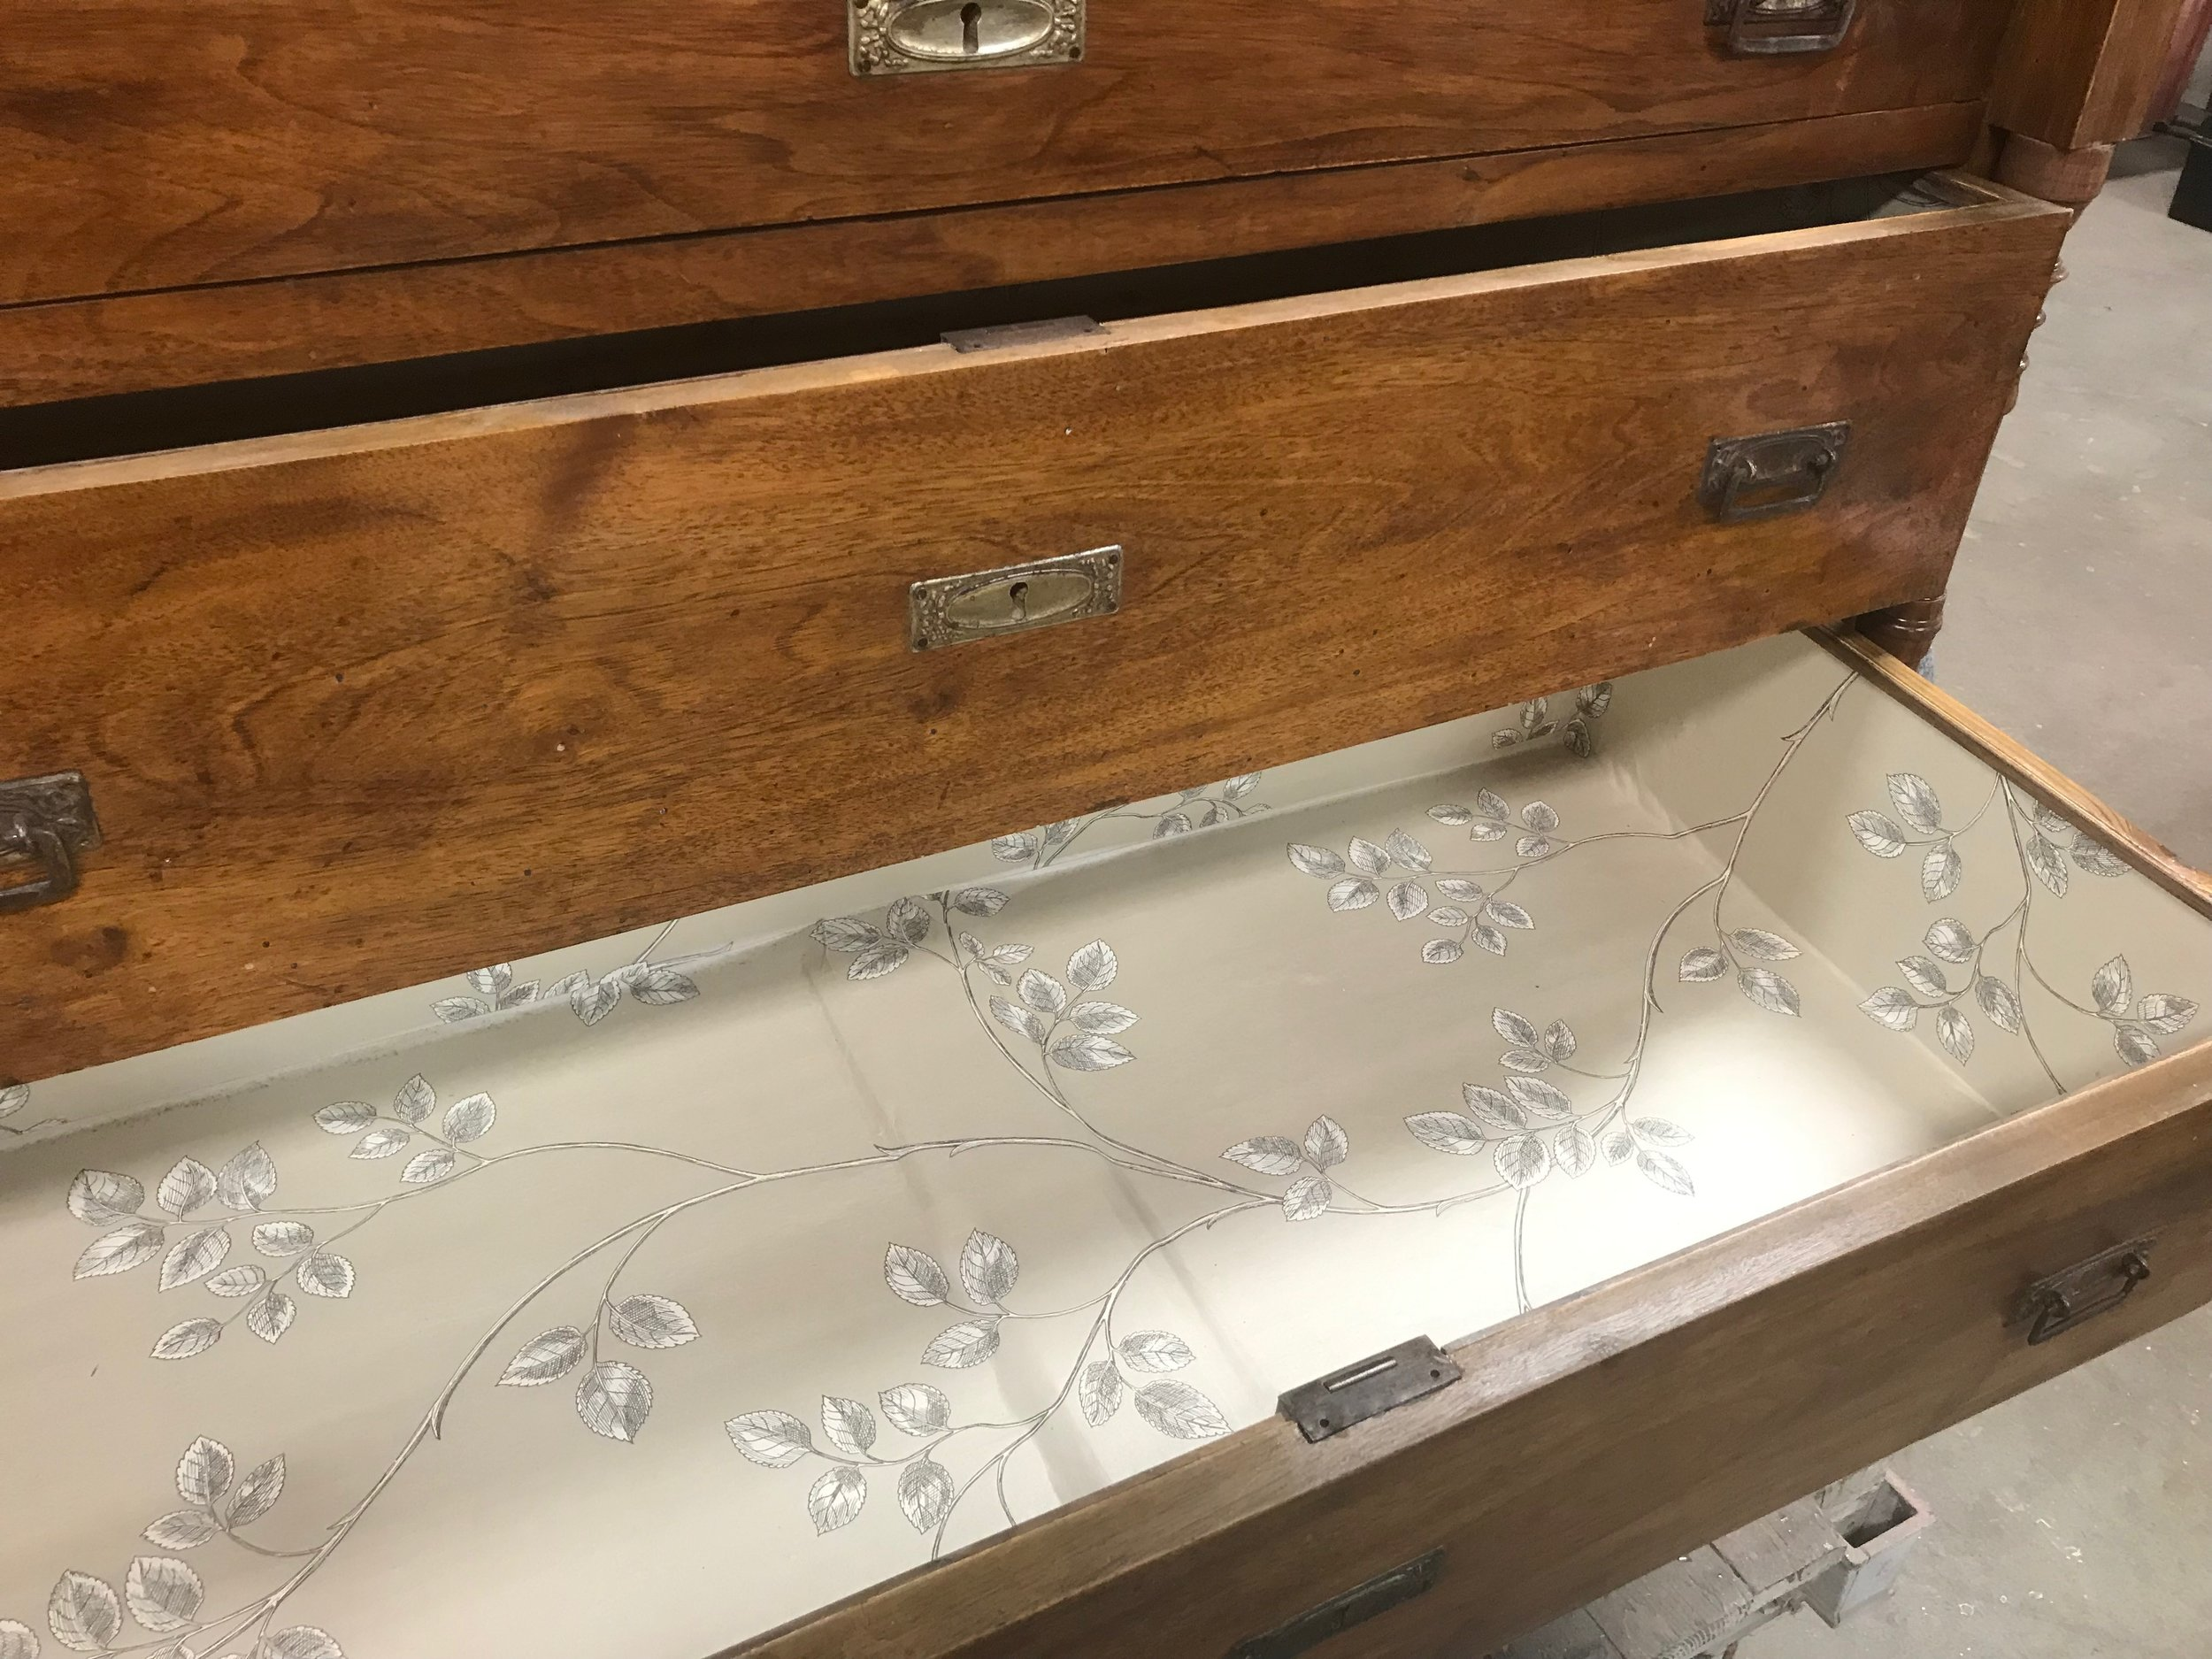 Lined the drawers with wallpaper client requested. added a trim to keep it clean looking and last longer.